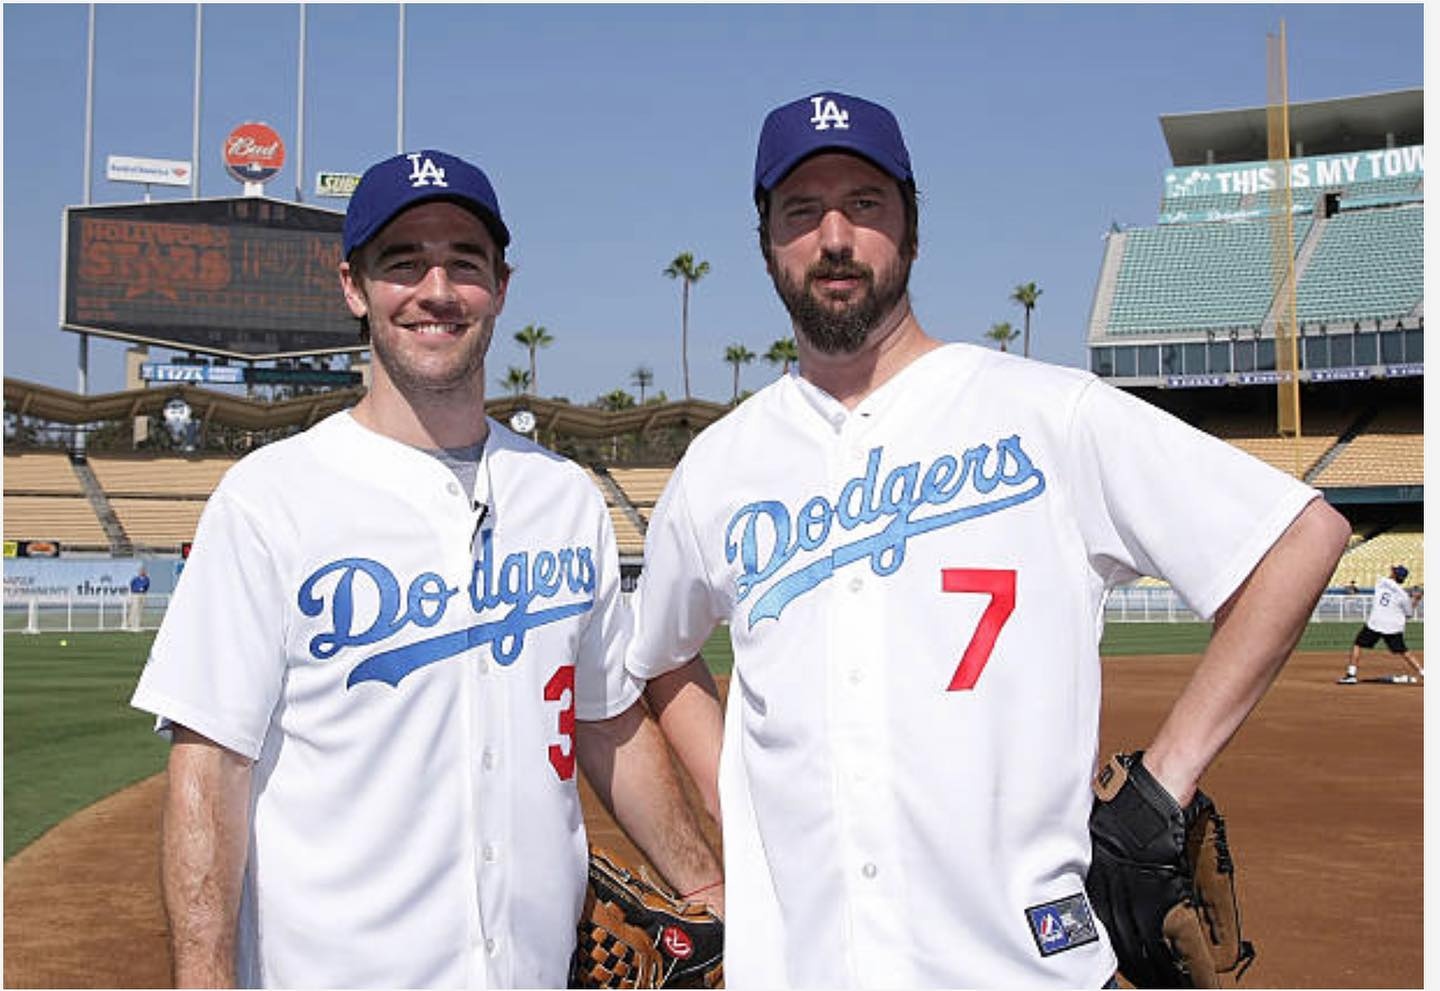 Throw back Thursday The great @vanderjames and I playing some ball @dodgers stadium!  Fun times!  Rock on James!